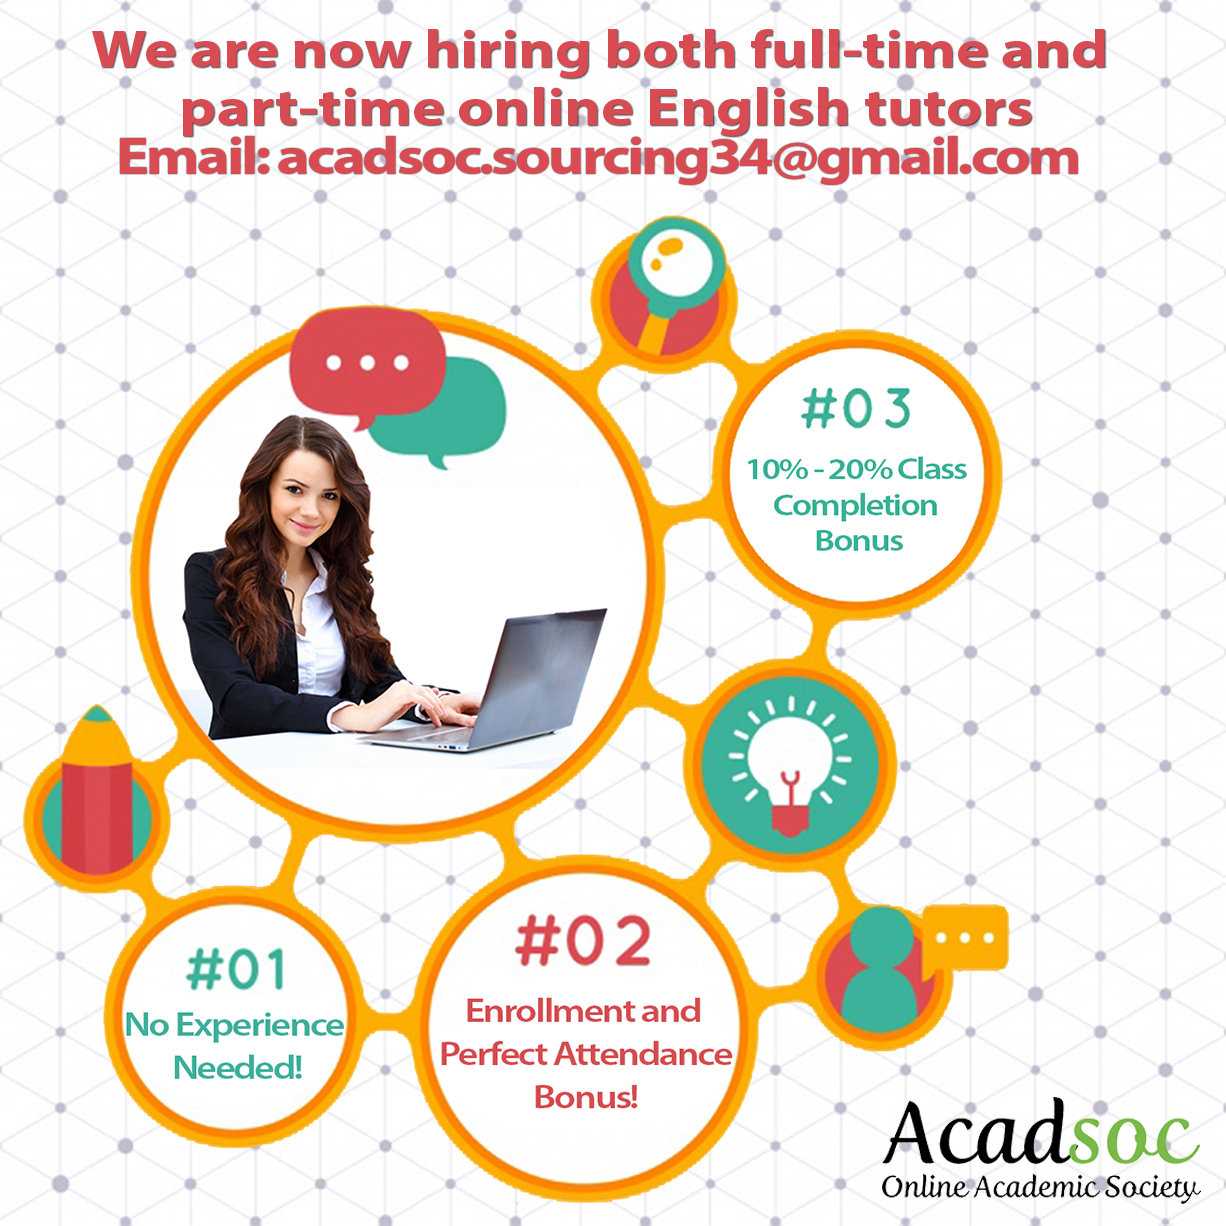 Online Esl Tutor (full-time Or Part-time) from Acadsoc Ltd.